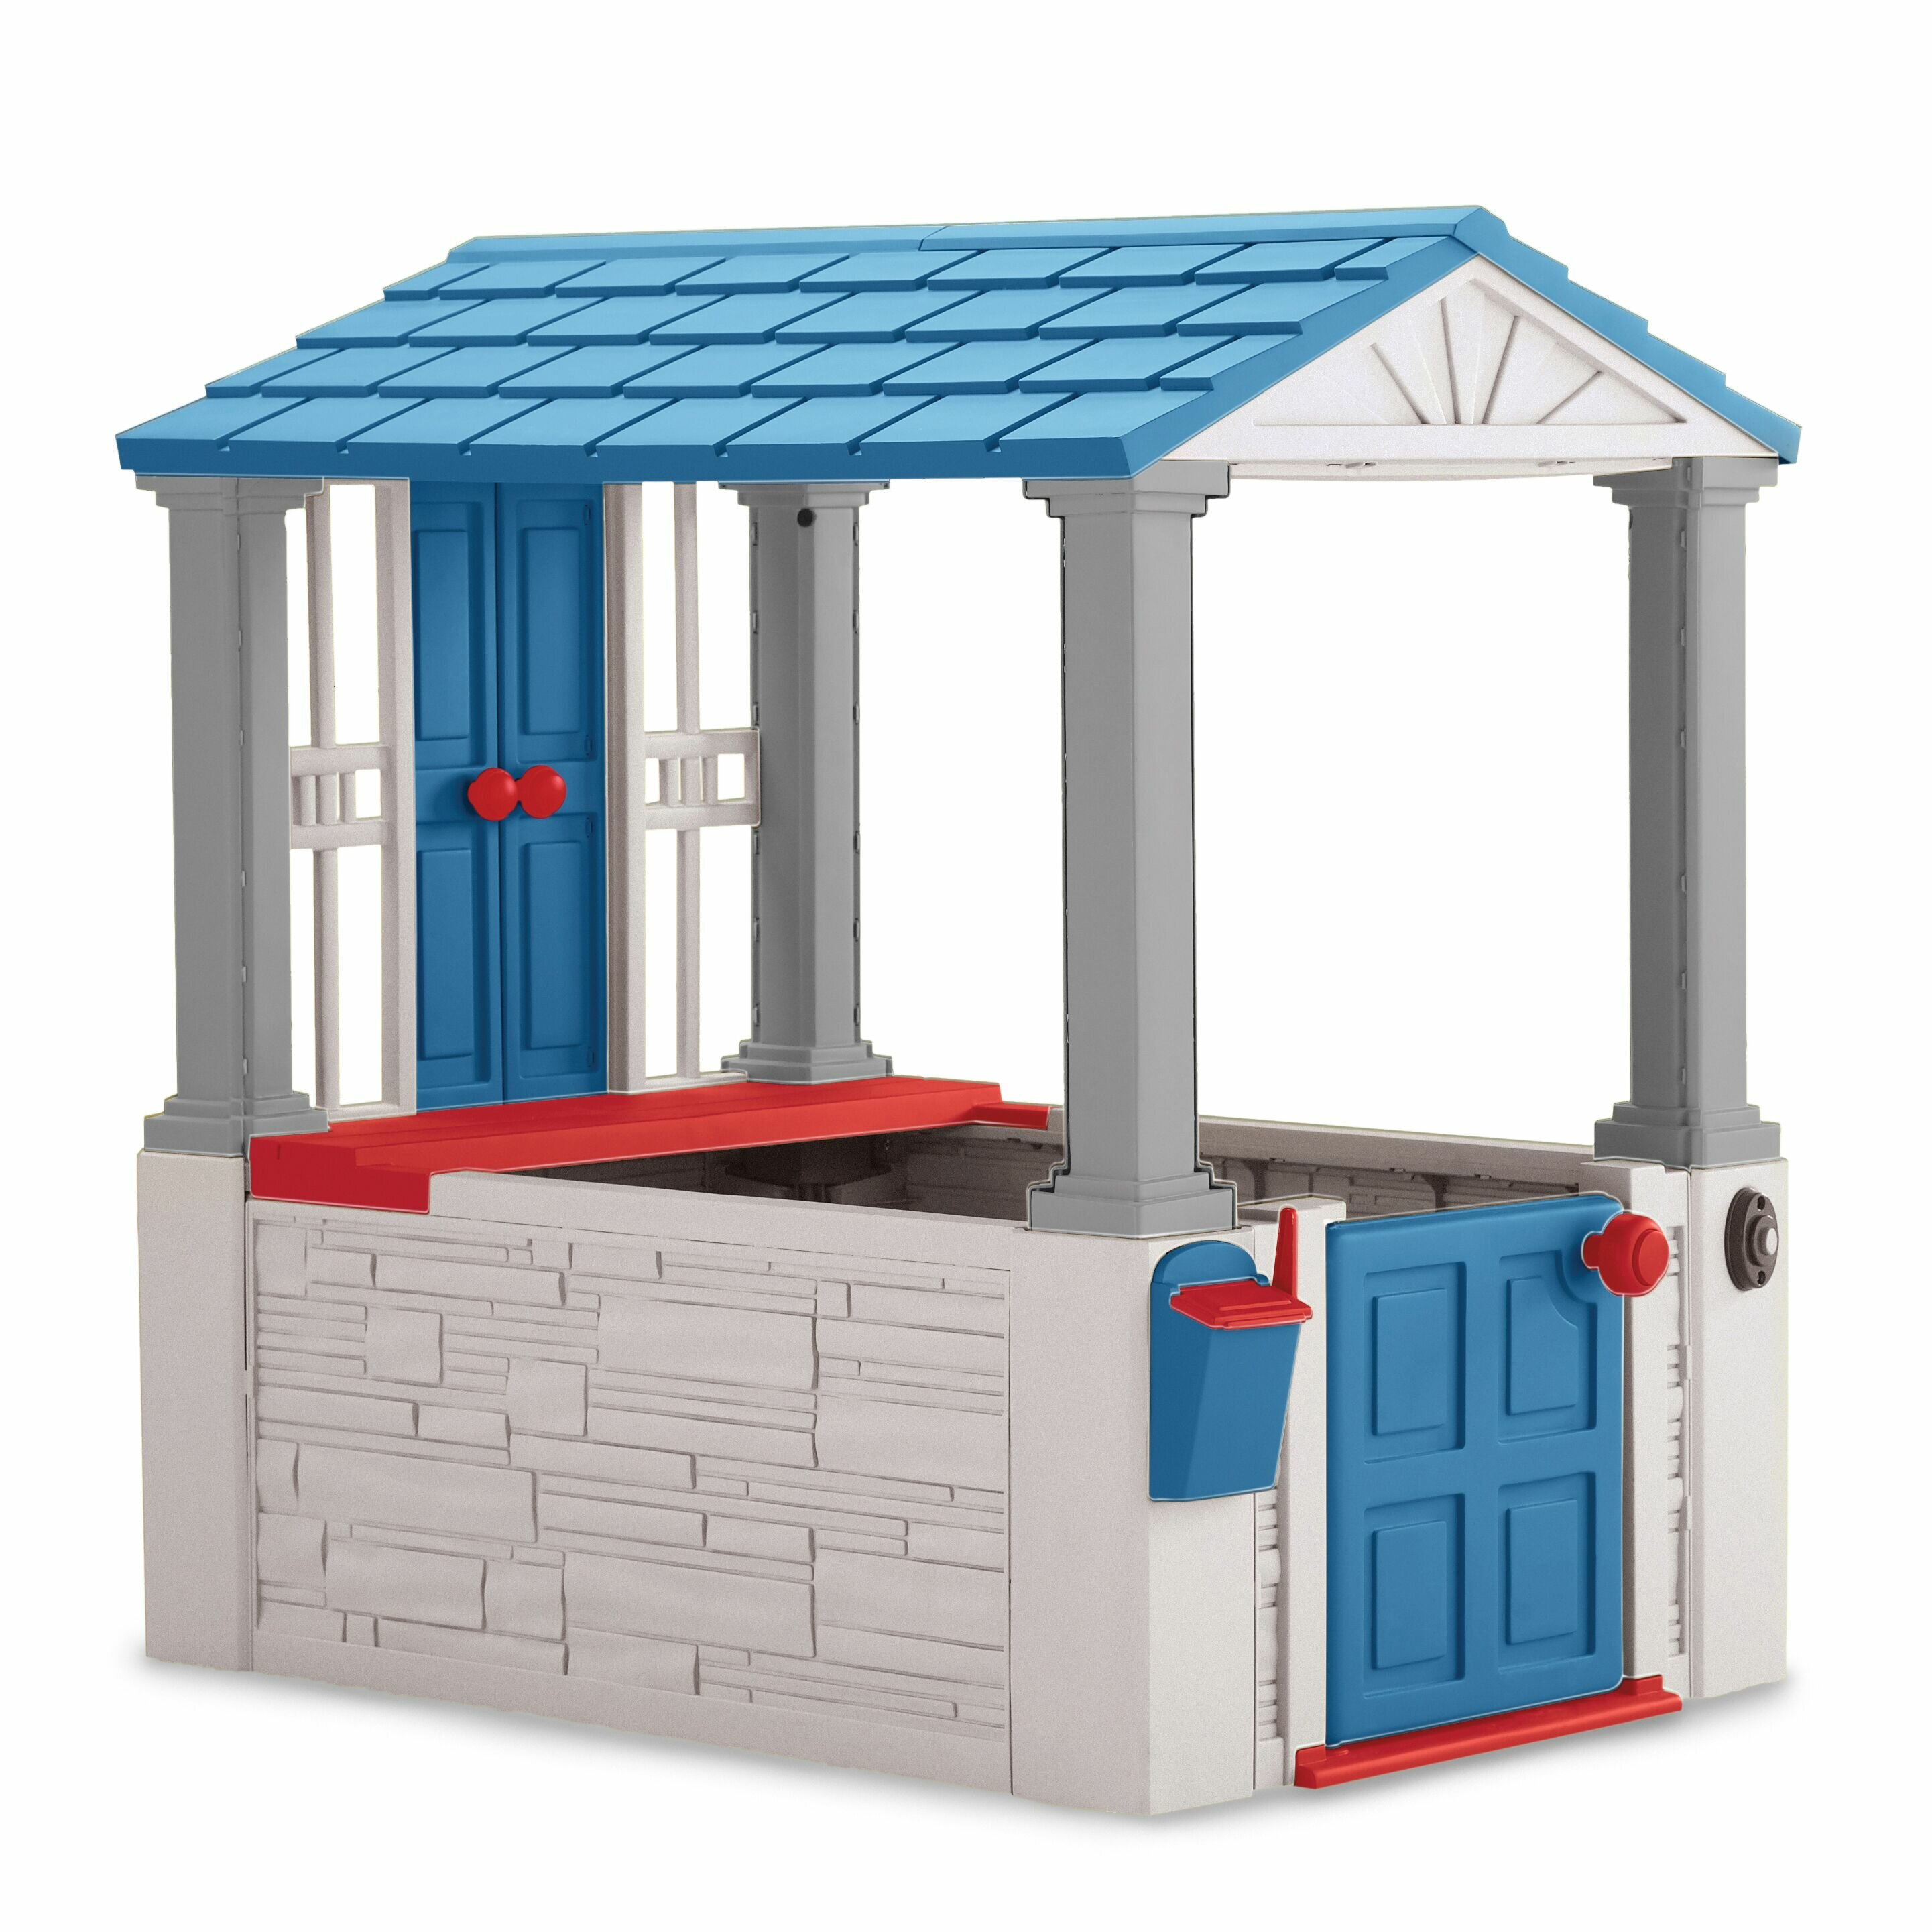 American Plastic Toys Role Play Furniture 2 52 X 3 63 Playhouse Reviews Wayfair